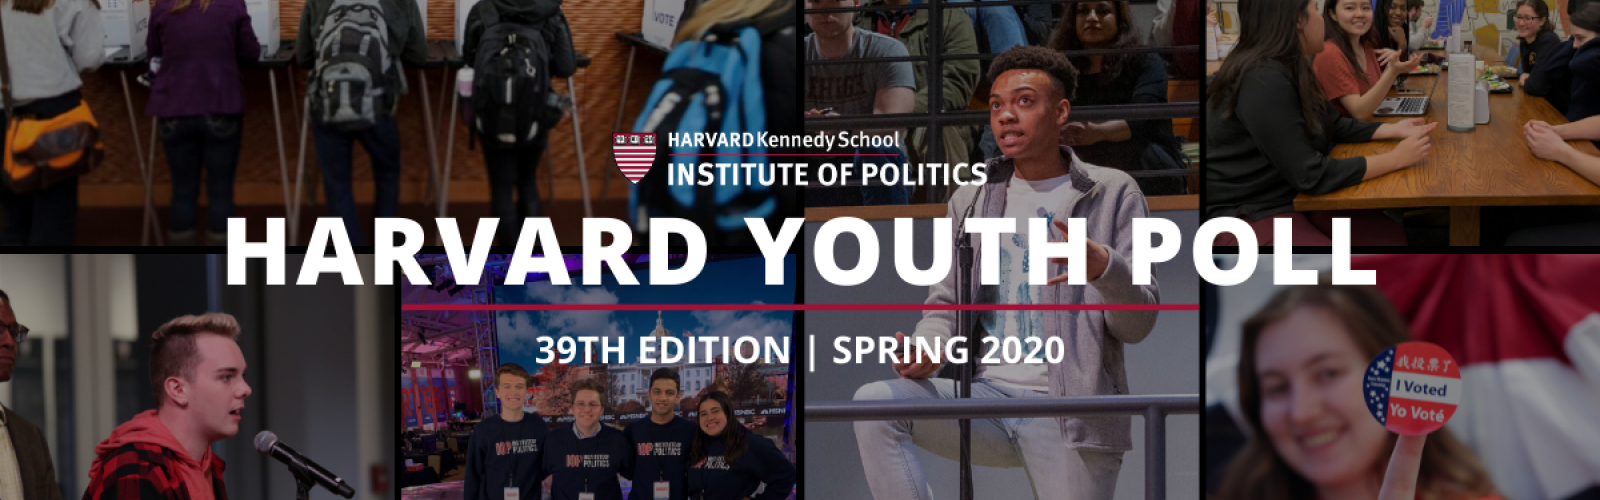 Spring 2020 Harvard Youth Poll